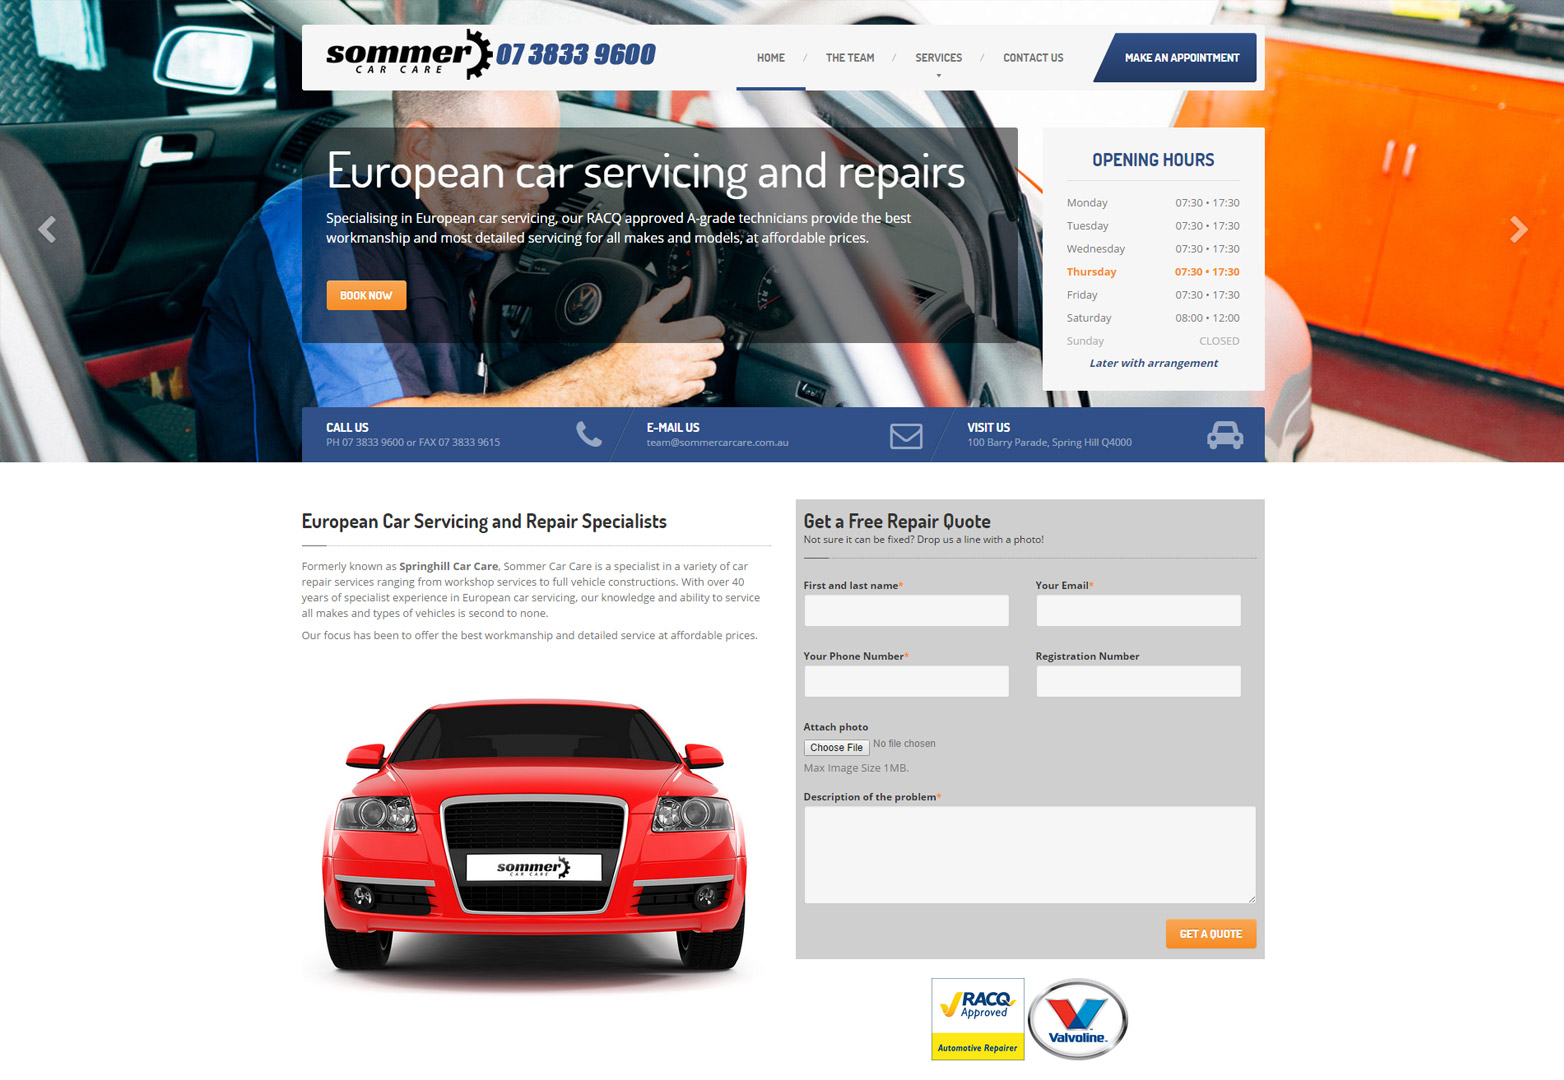 Homepage desktop view for Sommer Car Care